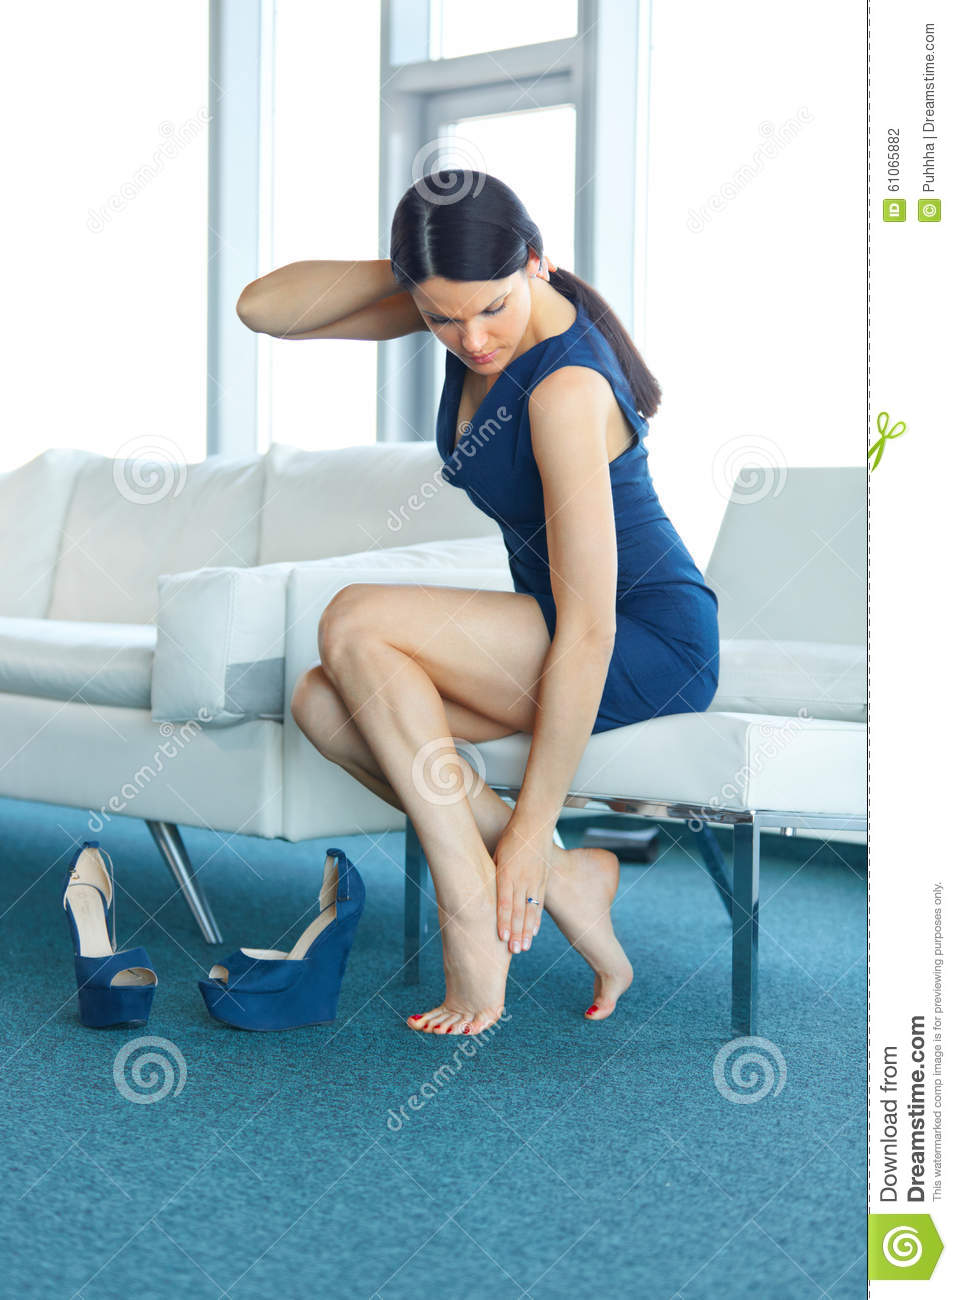 exhausted woman in heels